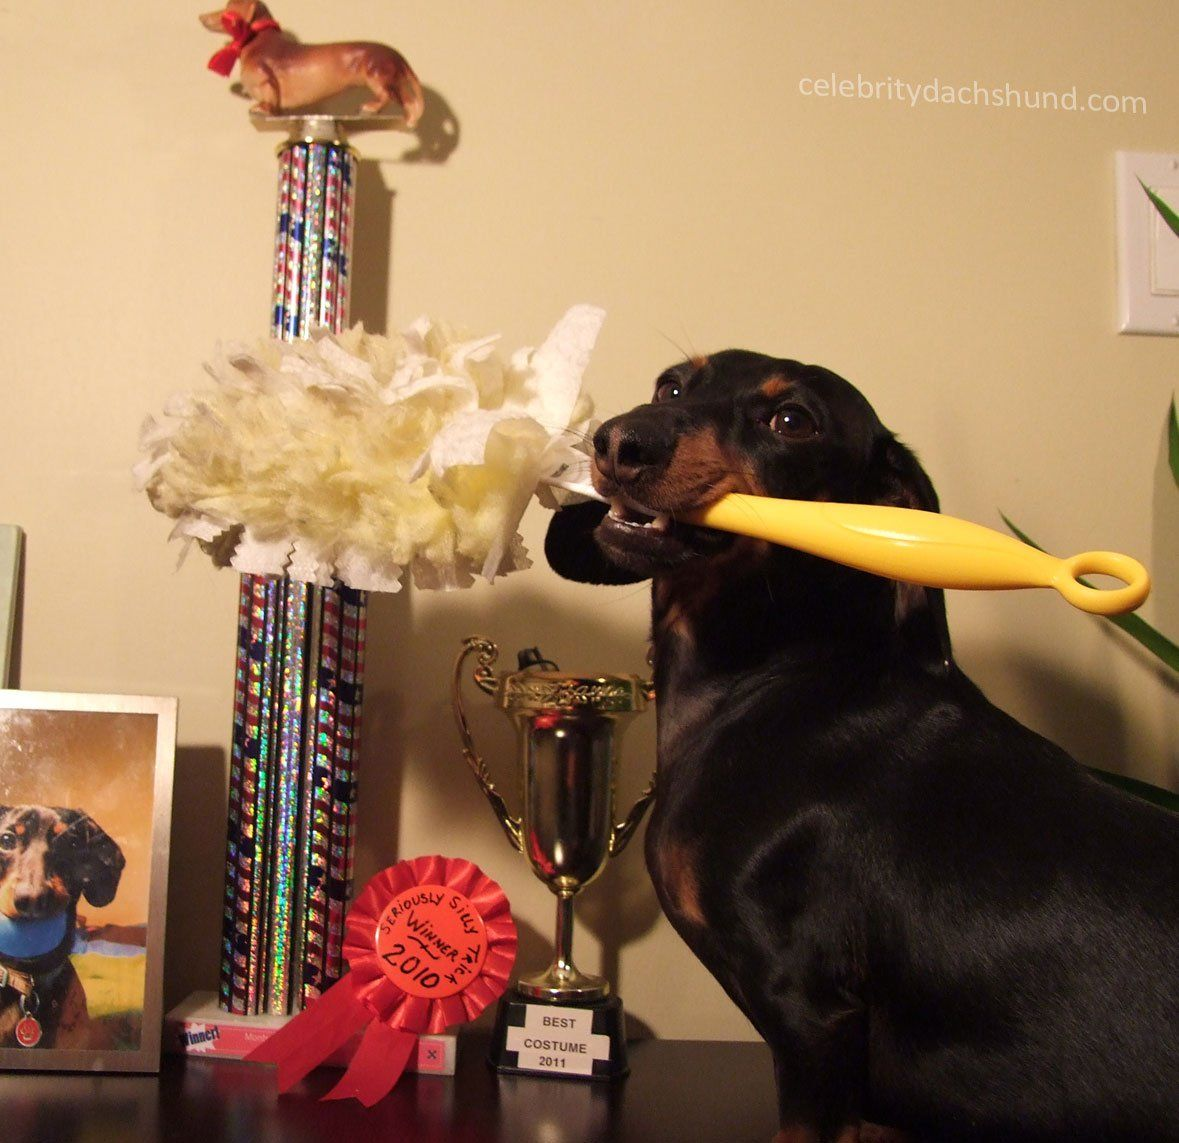 The Chores Of A Celebrity Dog Crusoe The Celebrity Dachshund Funny Dachshund Pictures Celebrity Dogs